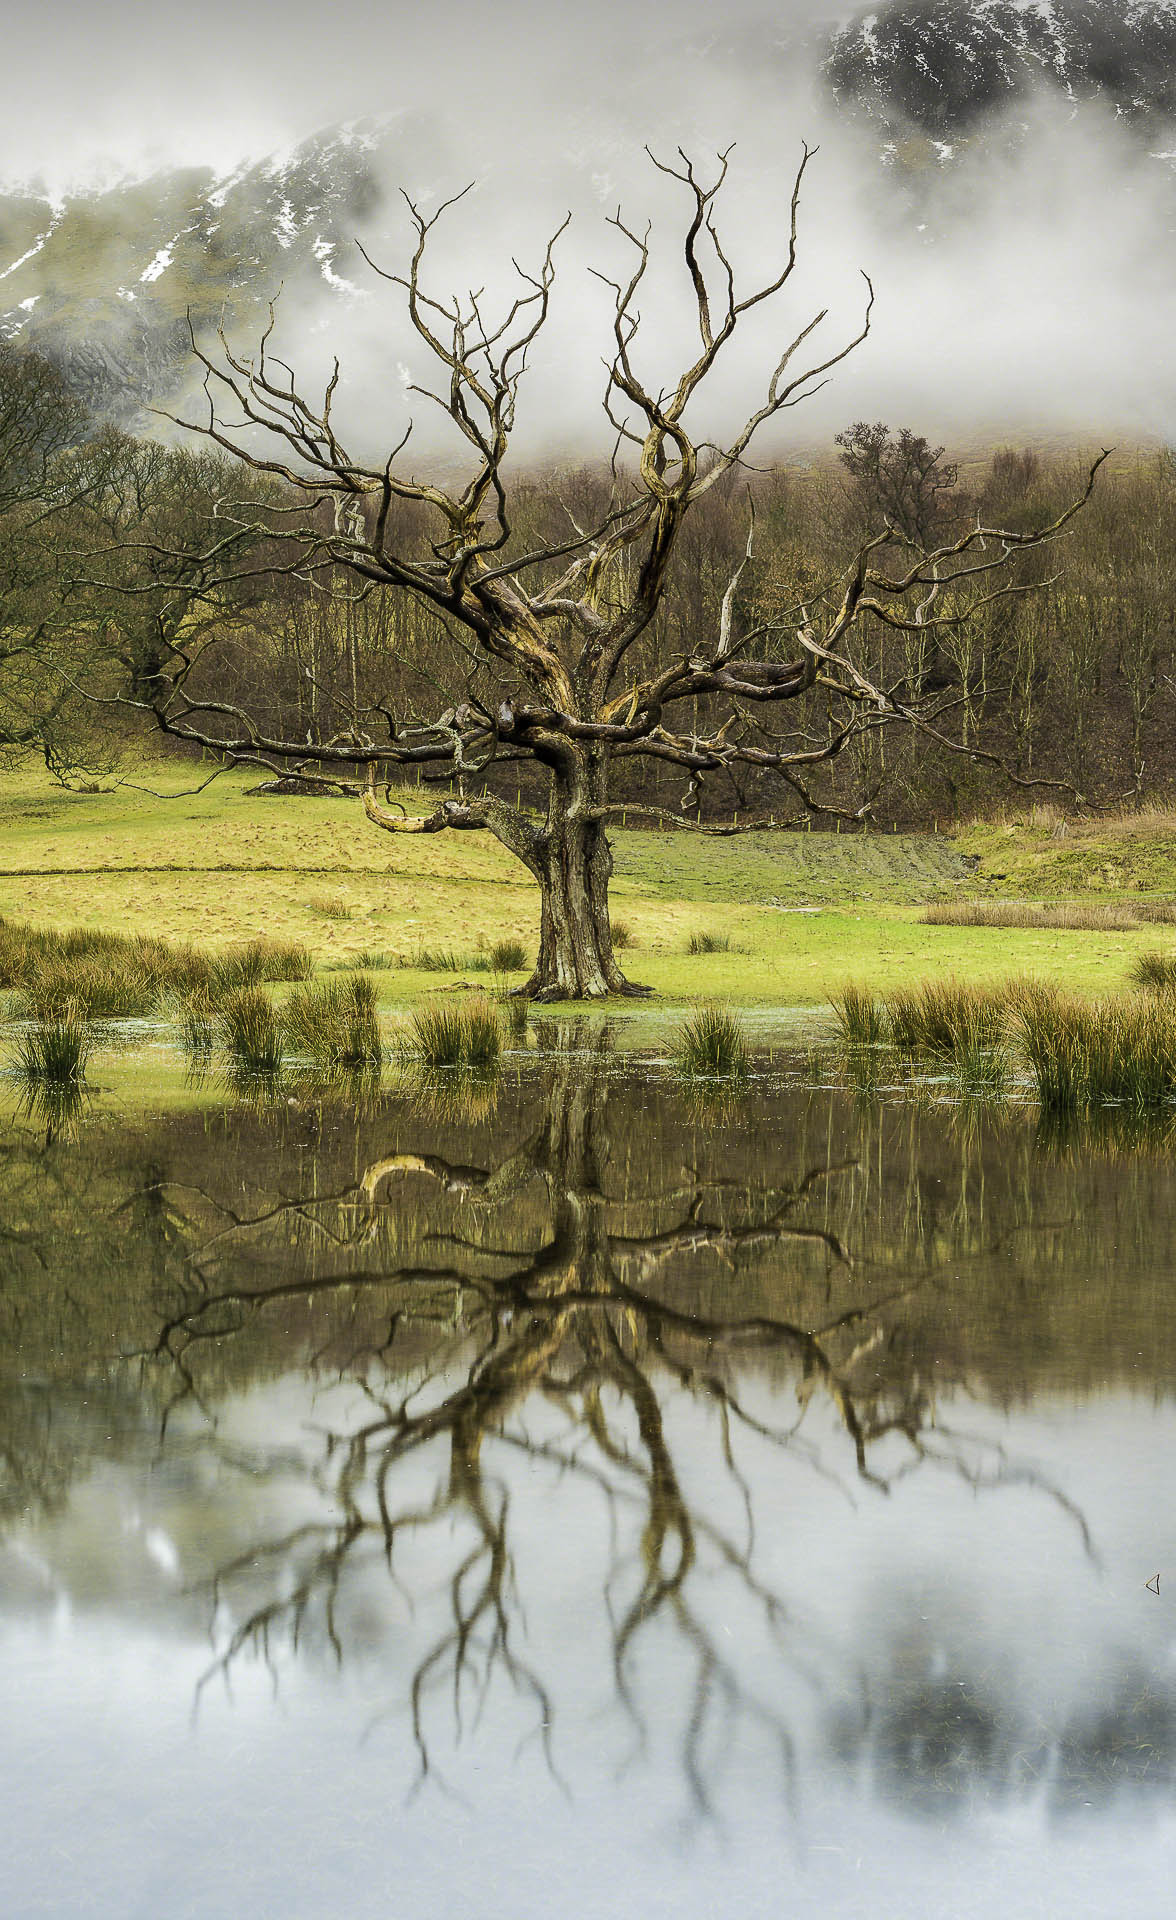 The Lifeless Tree - Blog Image 4x12.jpg